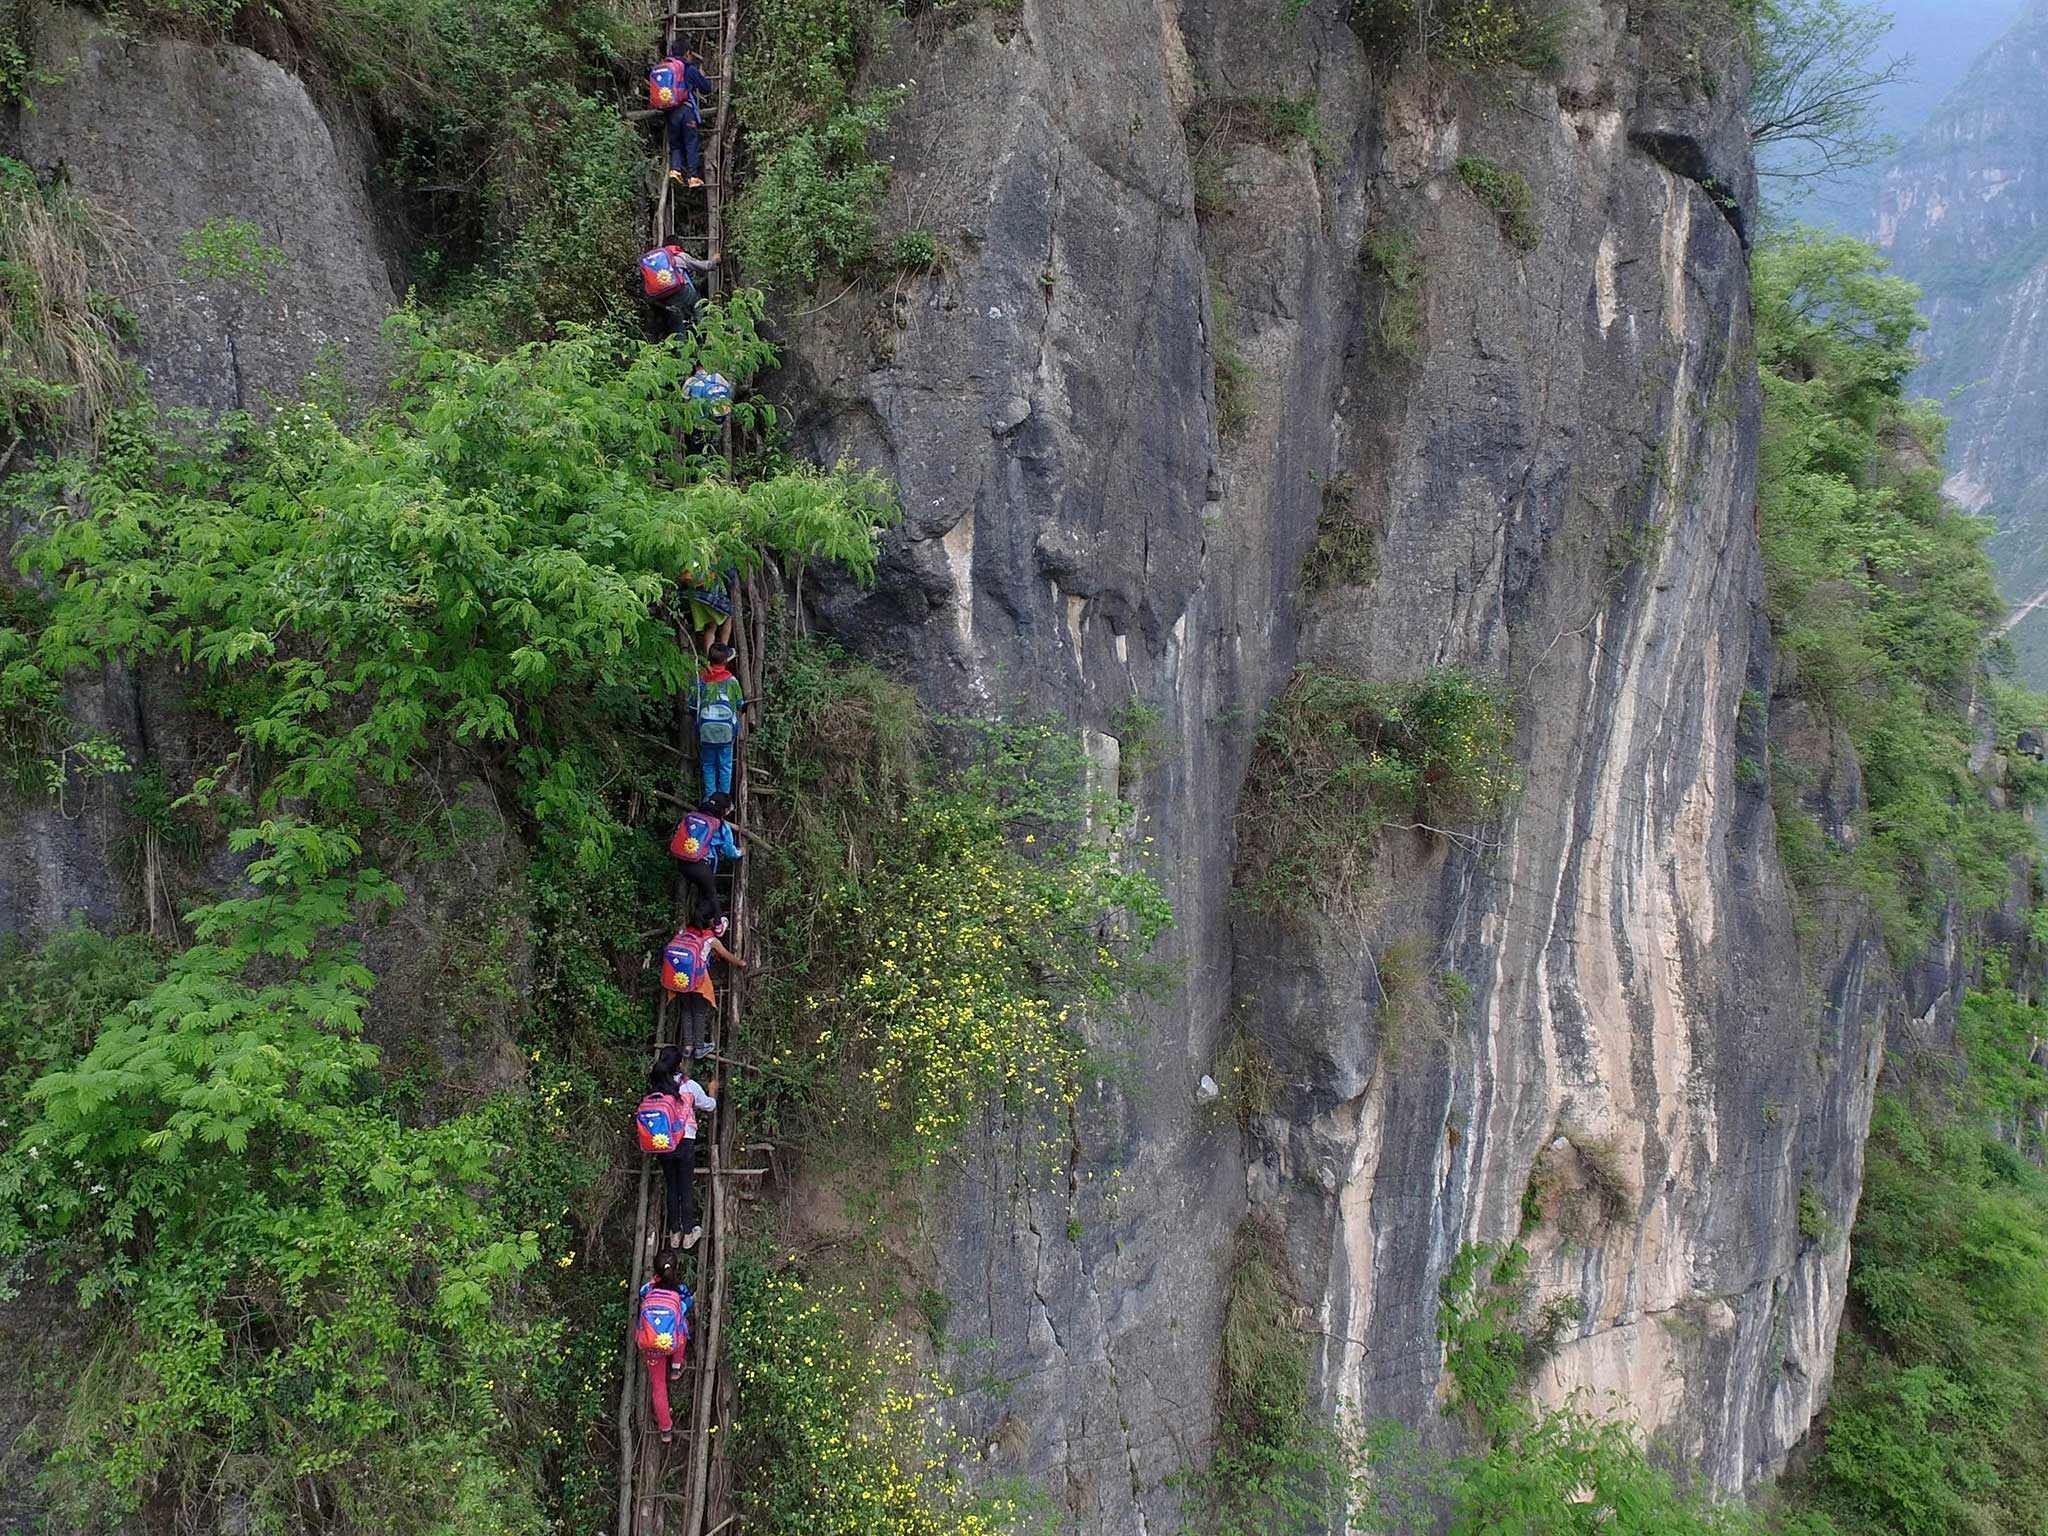 Children in China who climb 2,500 foot cliff to get to school may be given stairs